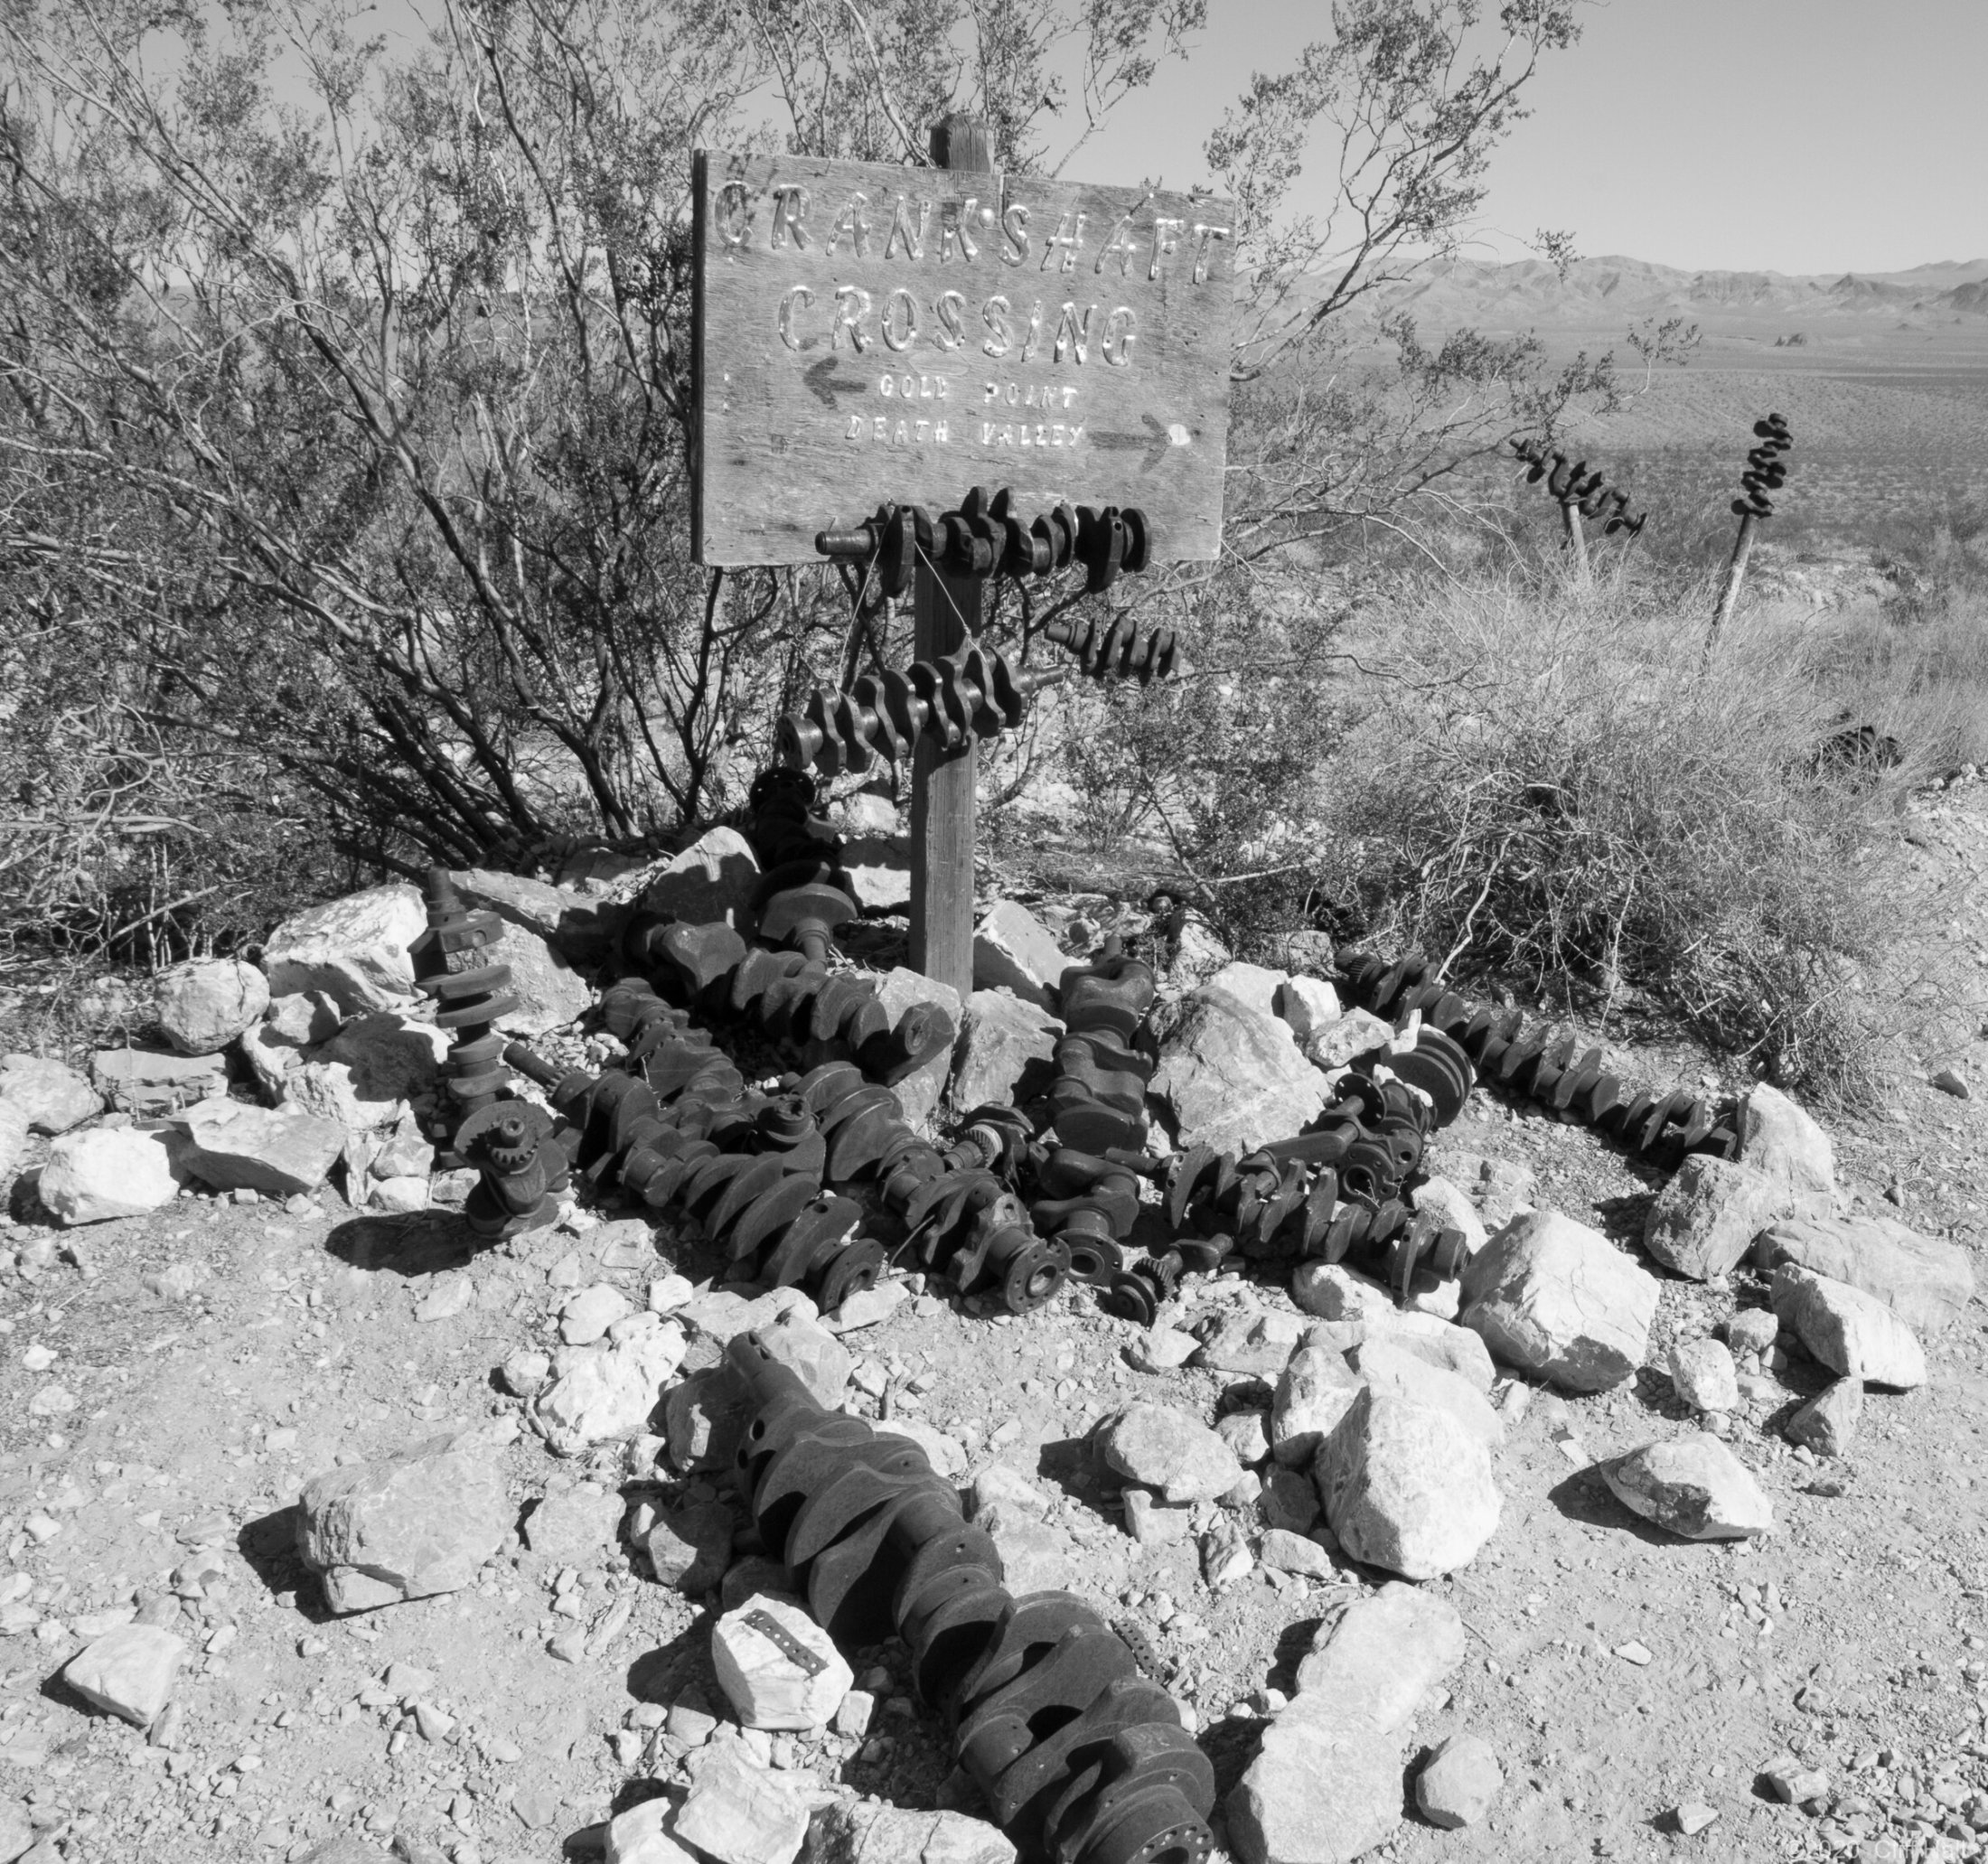 Crankshaft Junction, another quirky spot in Death Valley